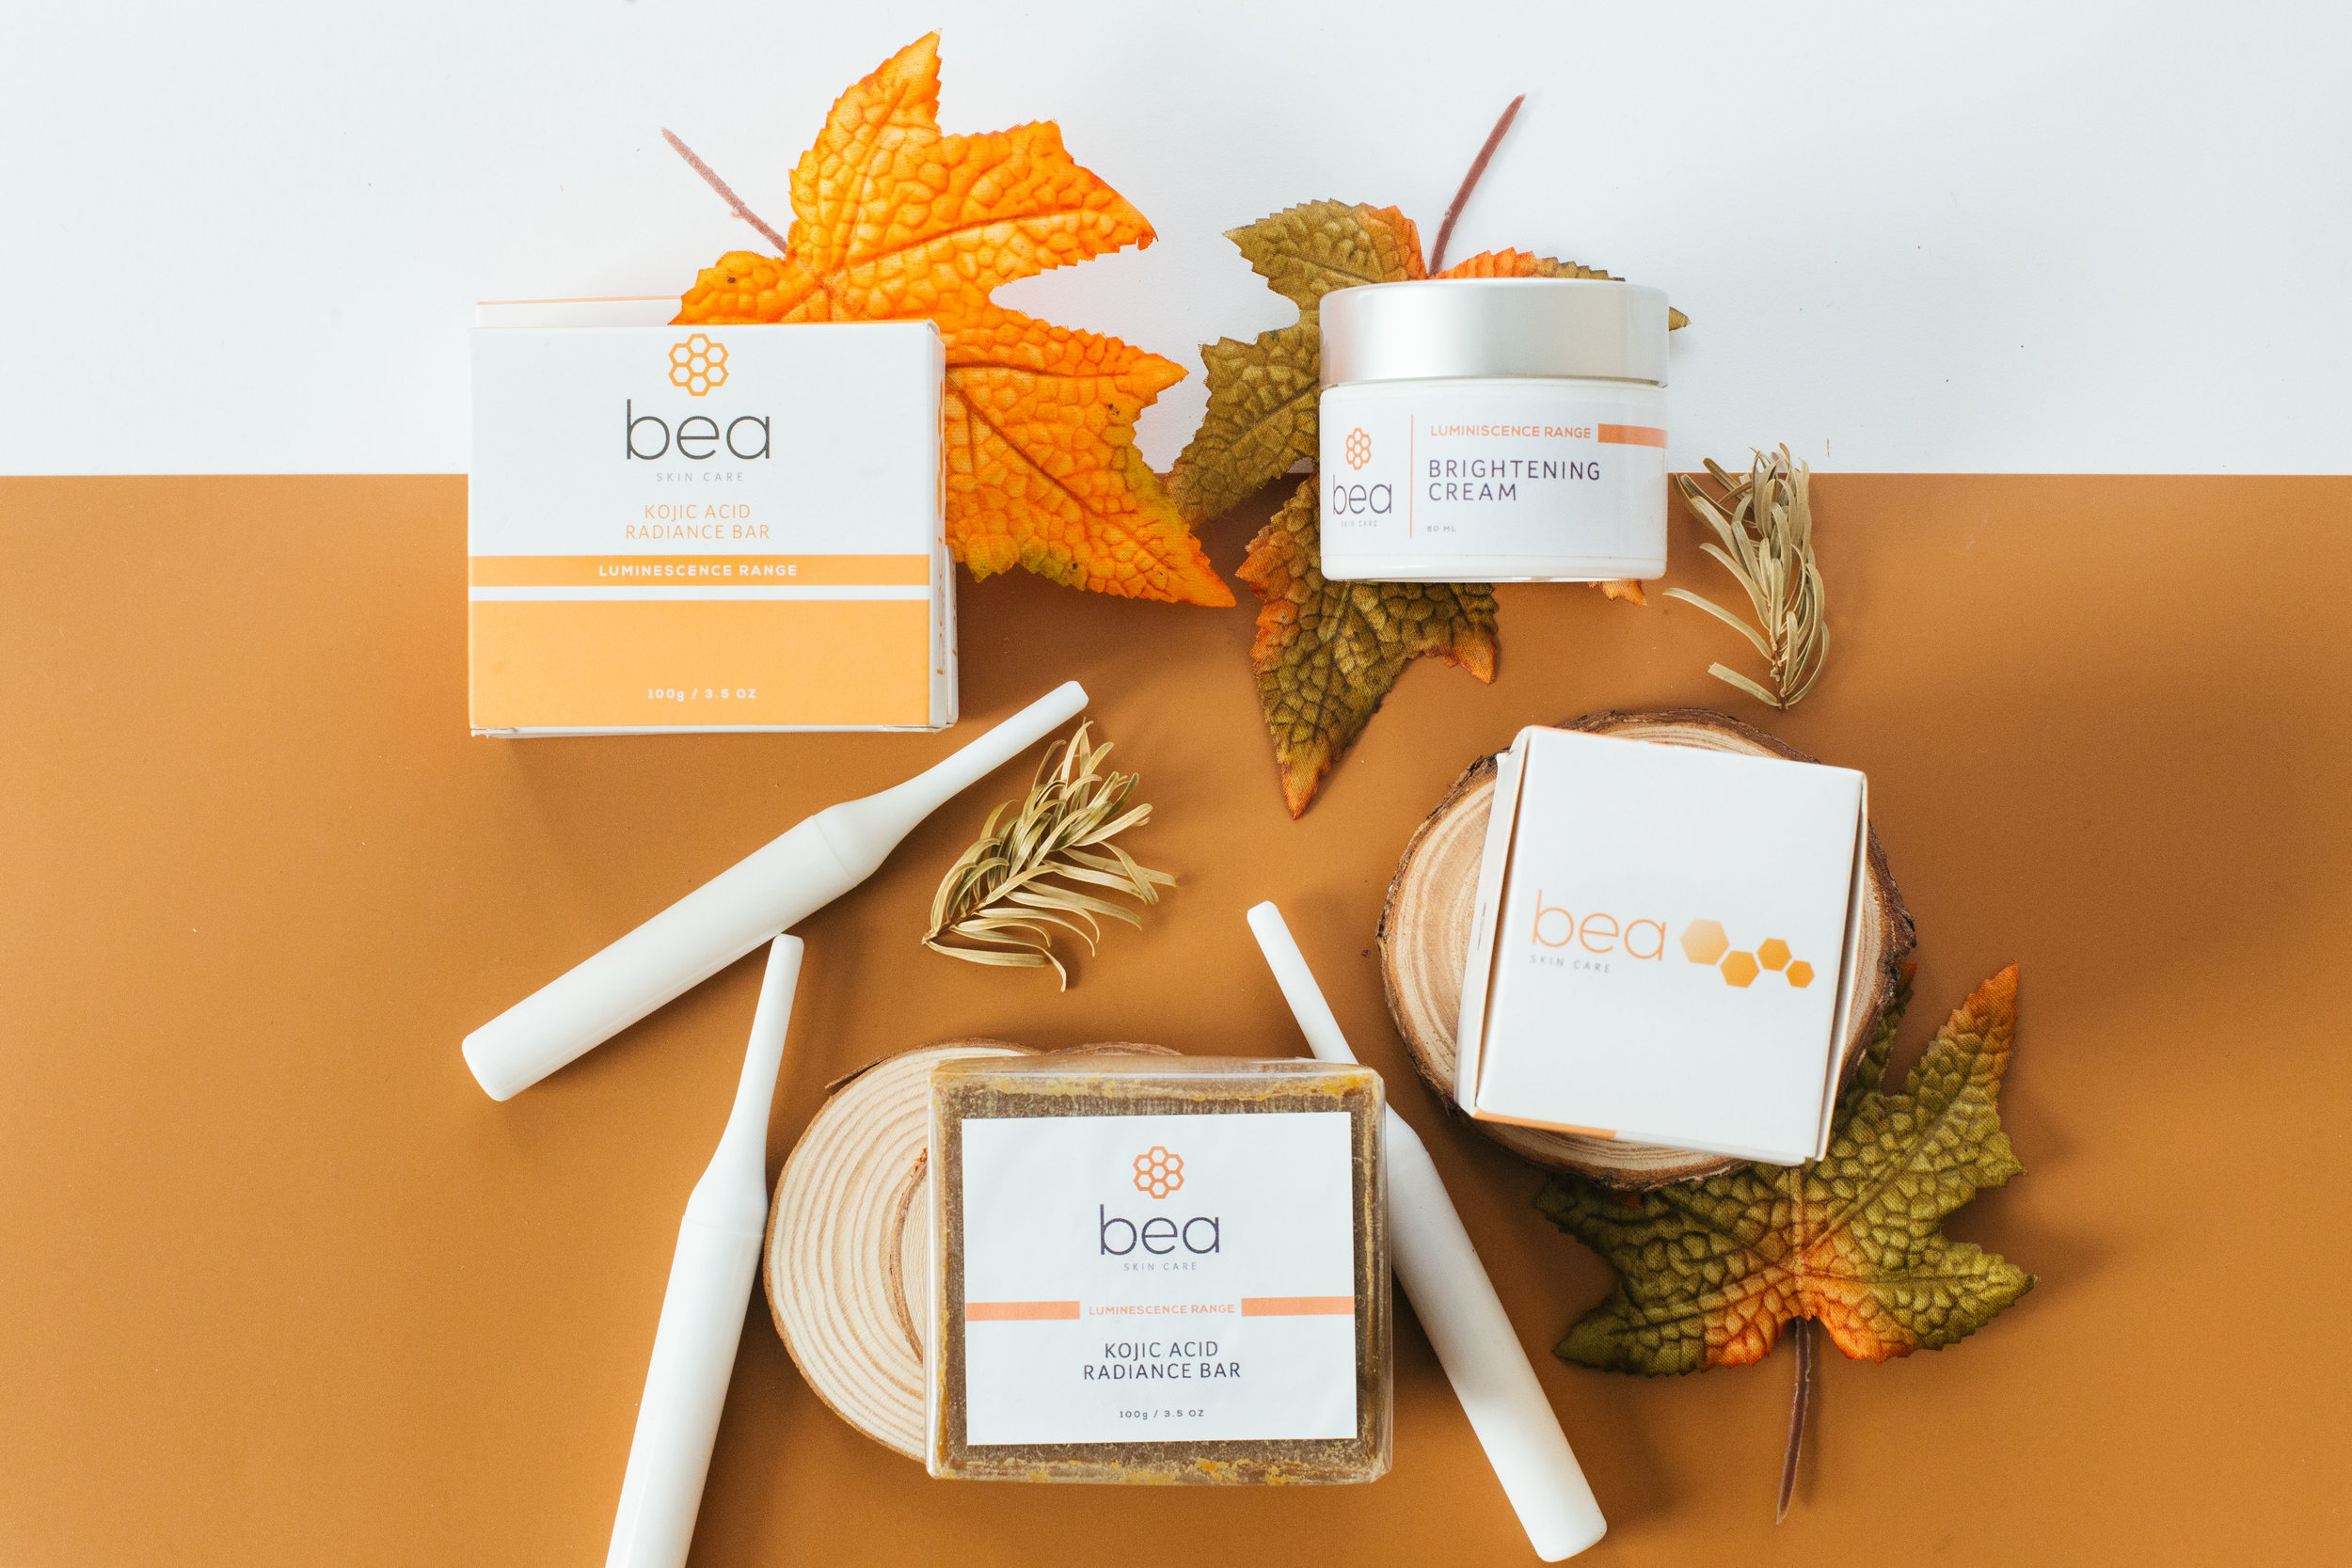 Bea_skin_care_seasonal (3 of 5).jpg